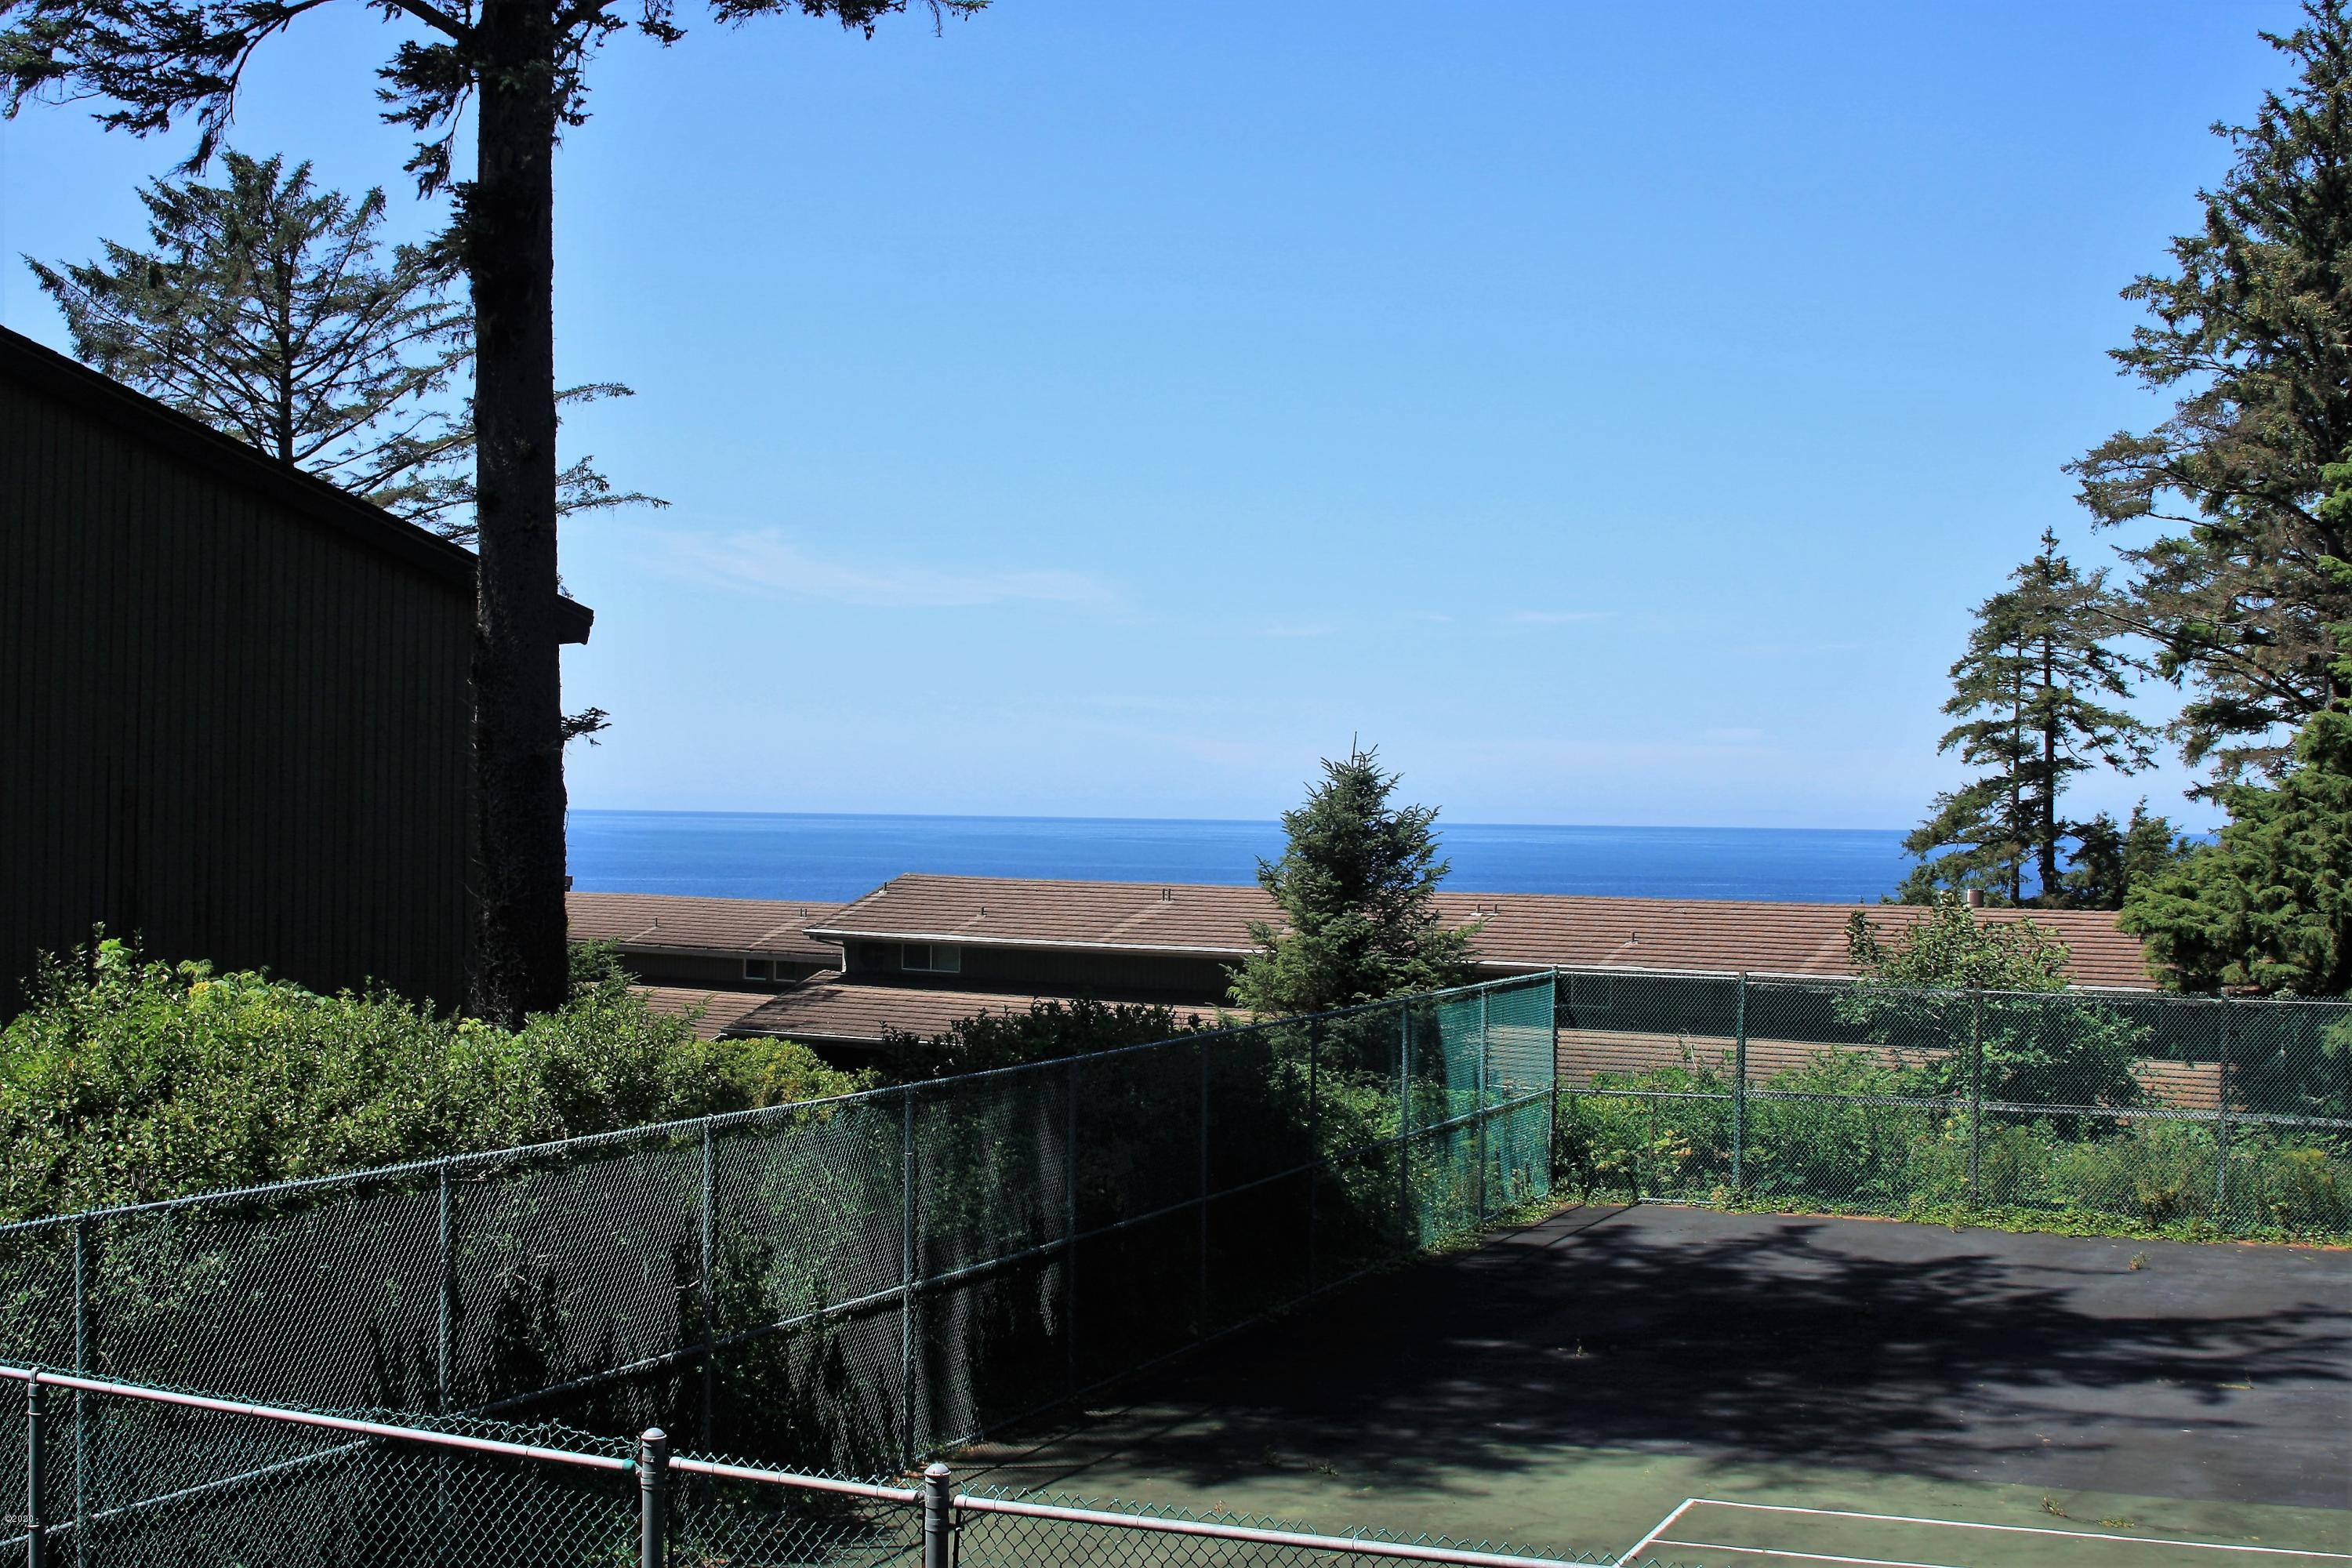 301 Otter Crest Dr, 172-173 1/12 SHARE, Otter Rock, OR 97369